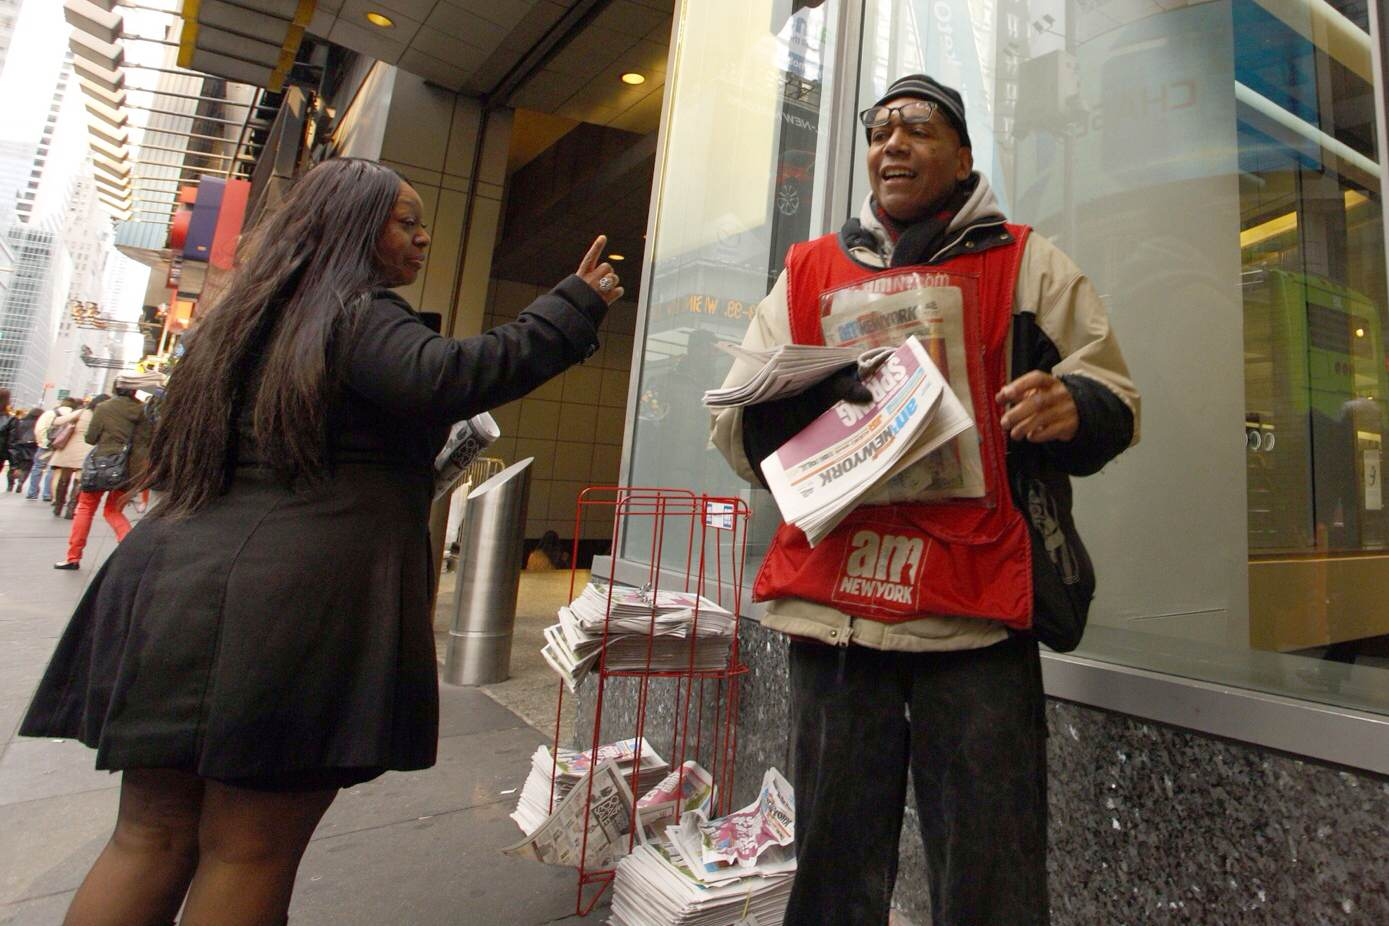 A woman has a friendly interaction with a newspaper man near 5th avenue.